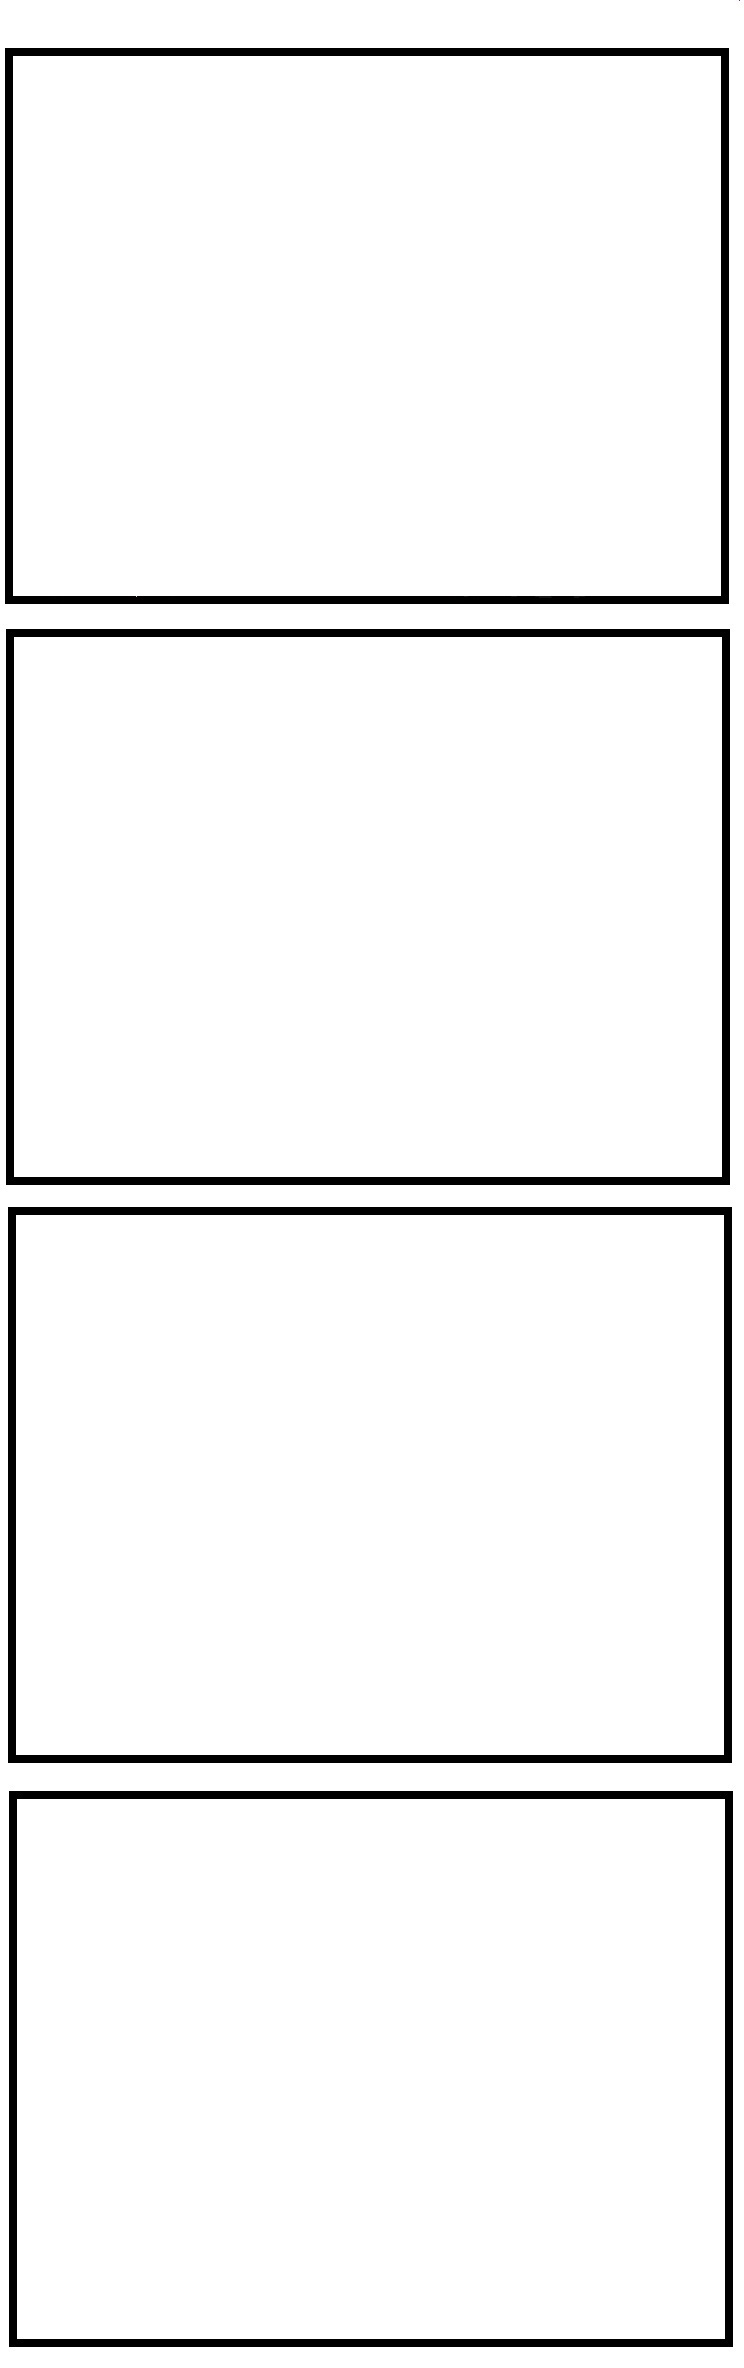 four panel comic strip template - 4 panel comic base by iwiseone on deviantart